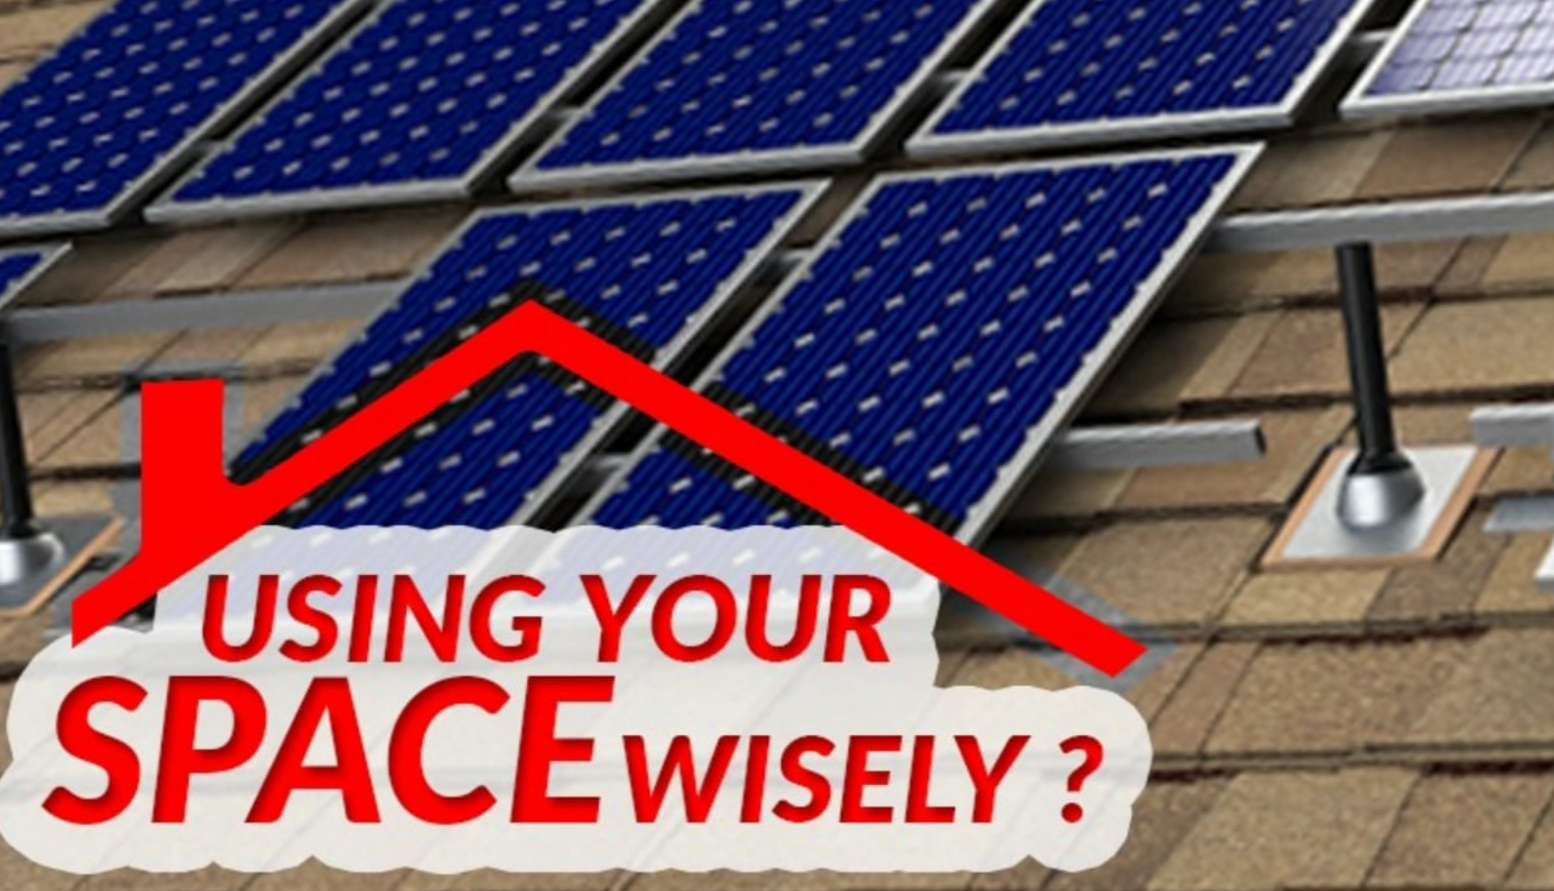 Diy Home Solar Panels Build Your Own Solar Panels For Home Use With Step By Step Instructions Diysolarpa Solar Power Diy Solar Power House Solar Energy Diy